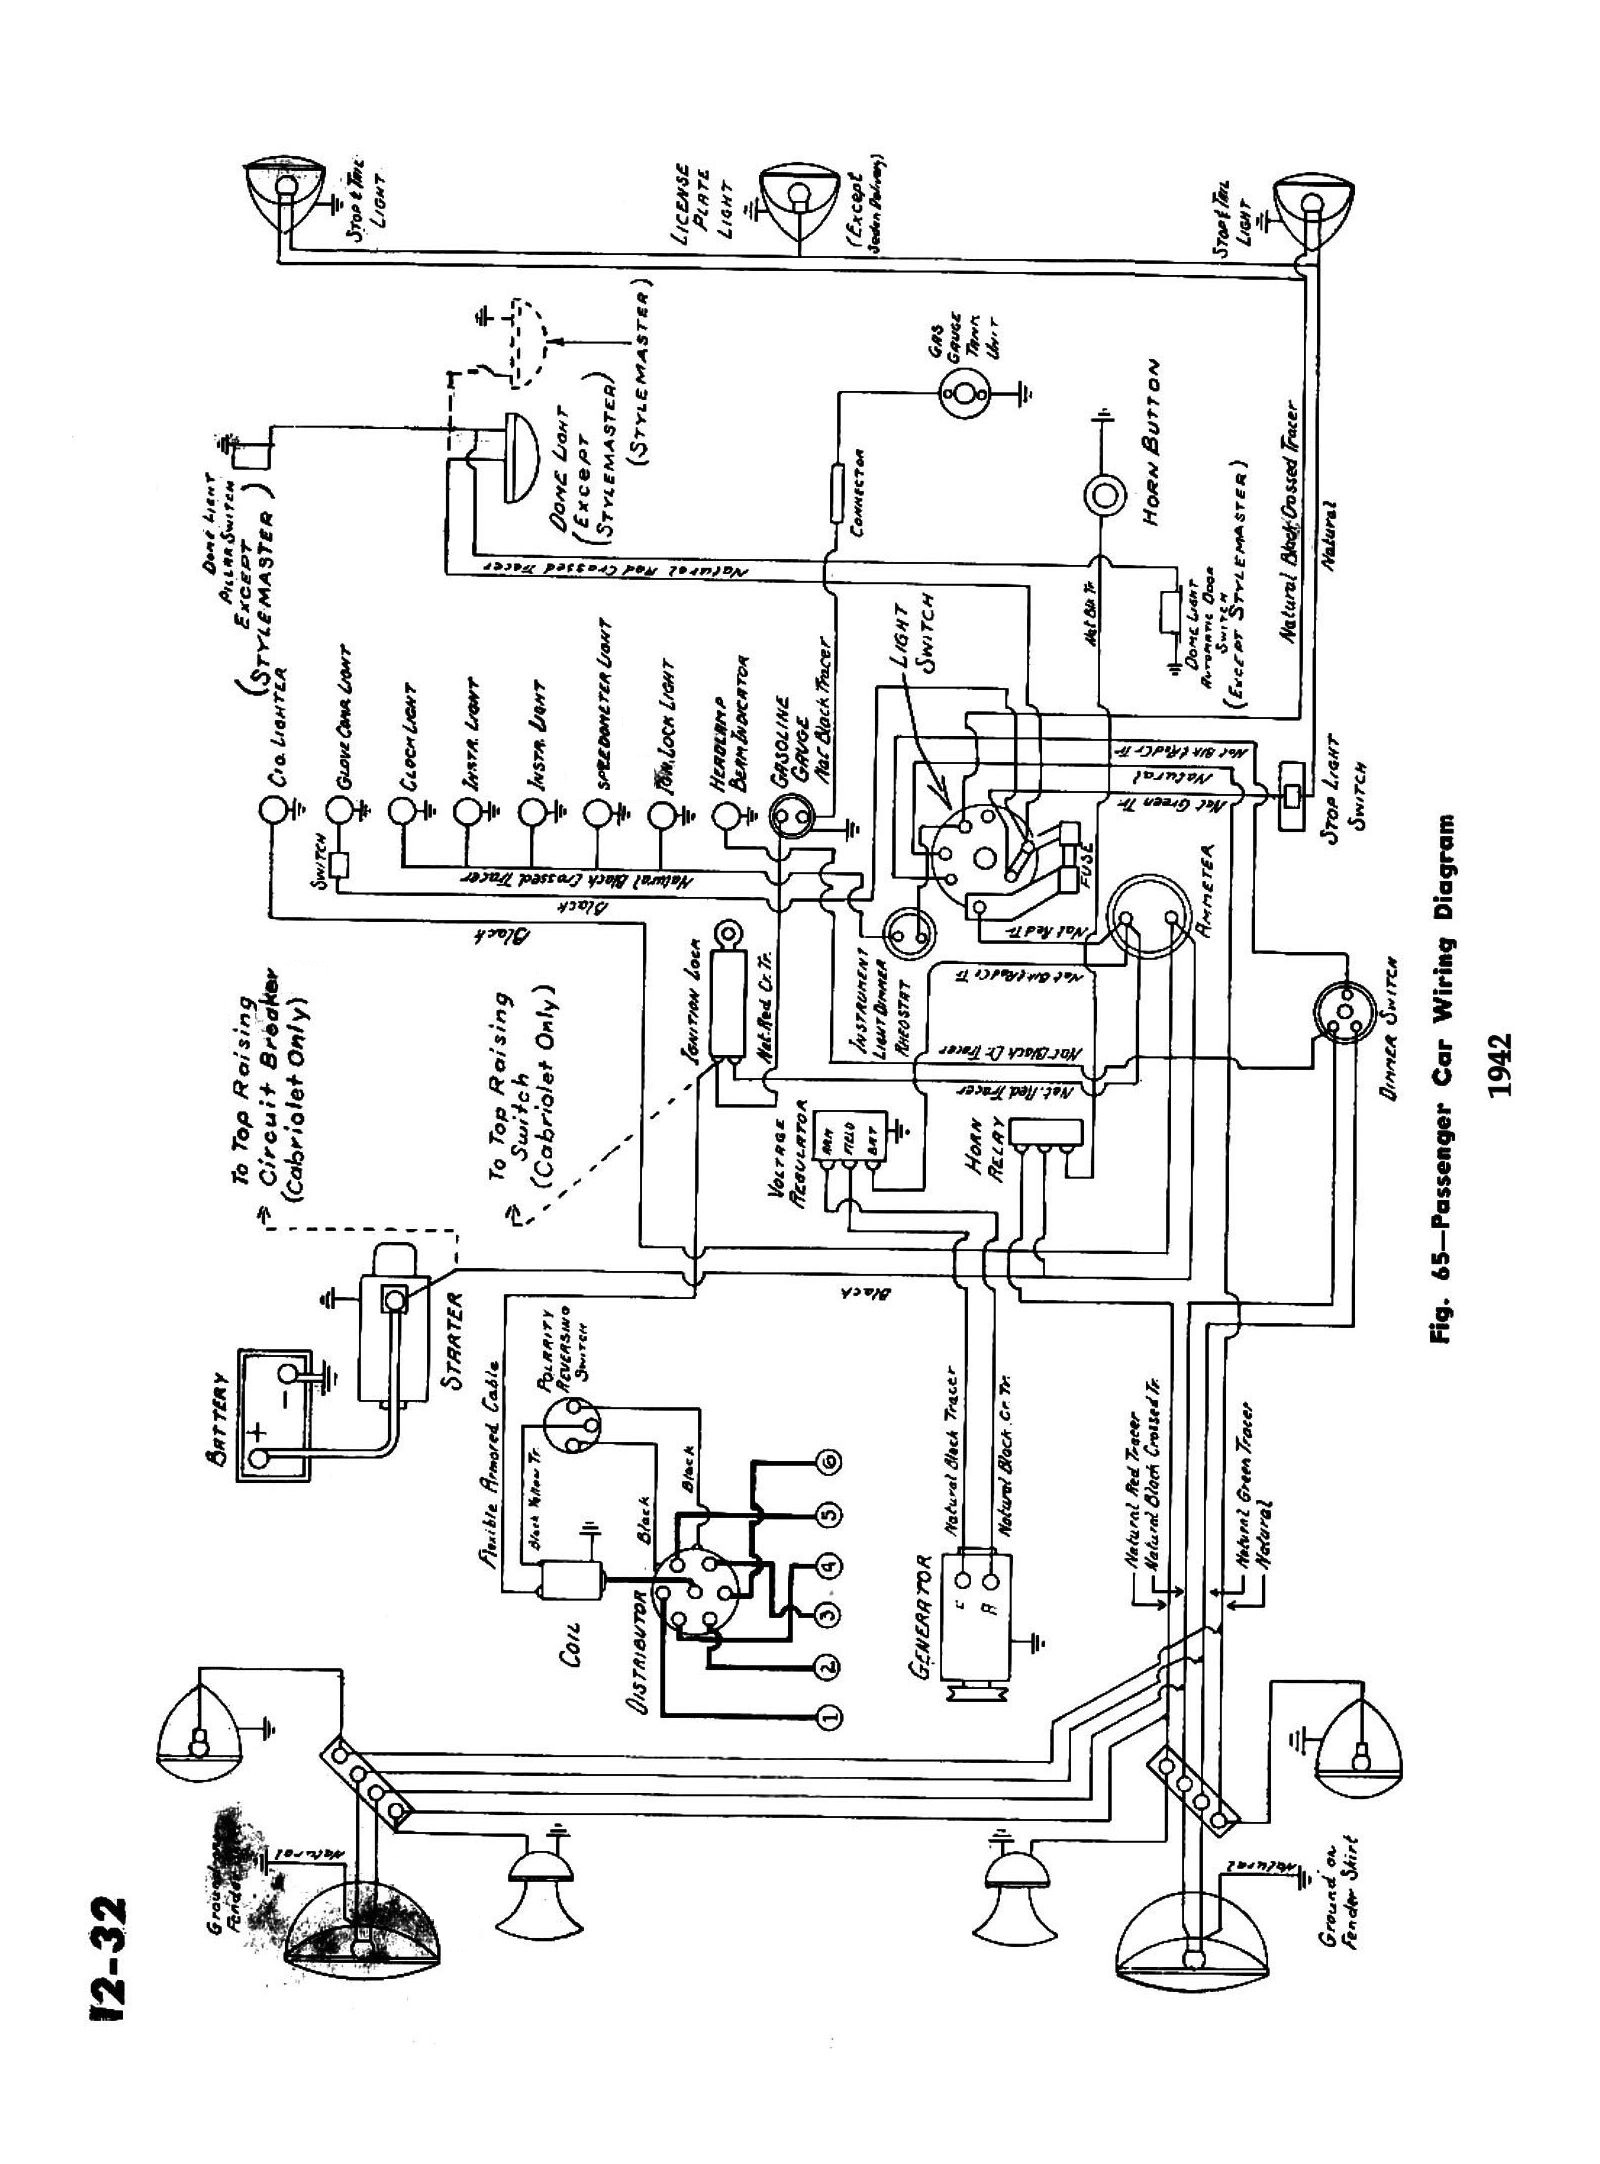 1978 Jeep Cj5 Wiring Diagram from chevy.oldcarmanualproject.com